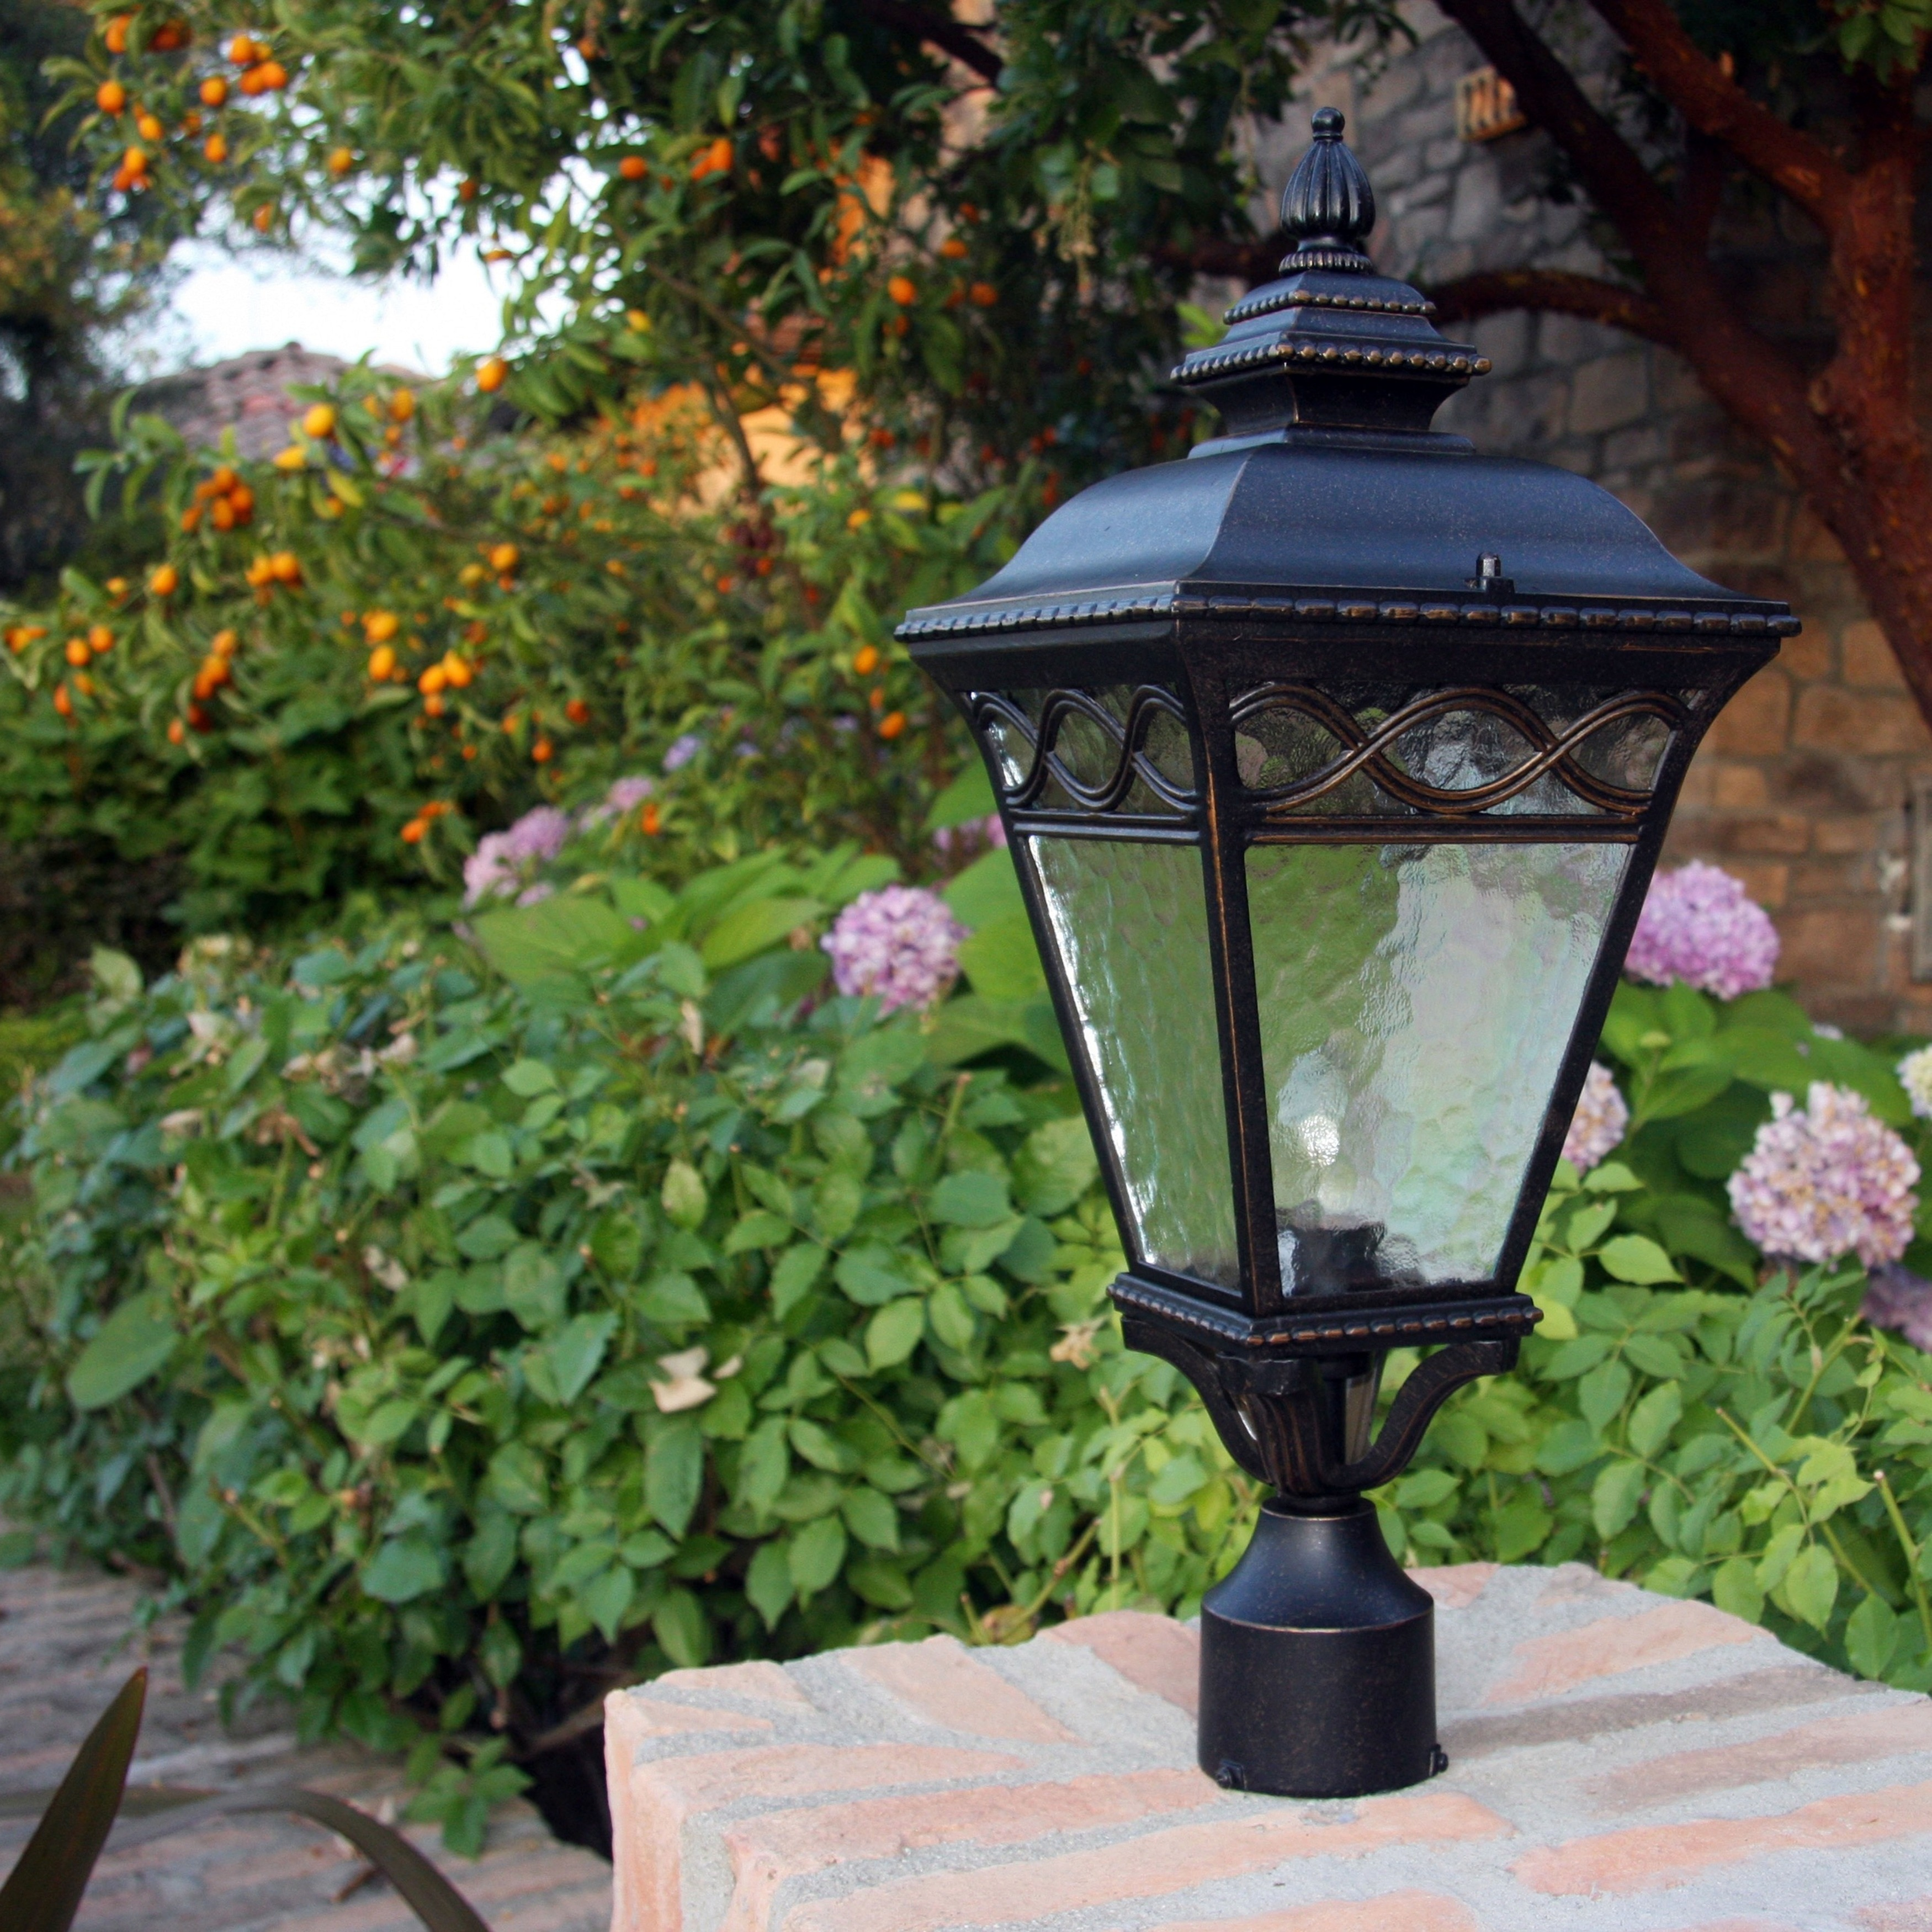 Inspirational Lamp Post Ideas Landscaping